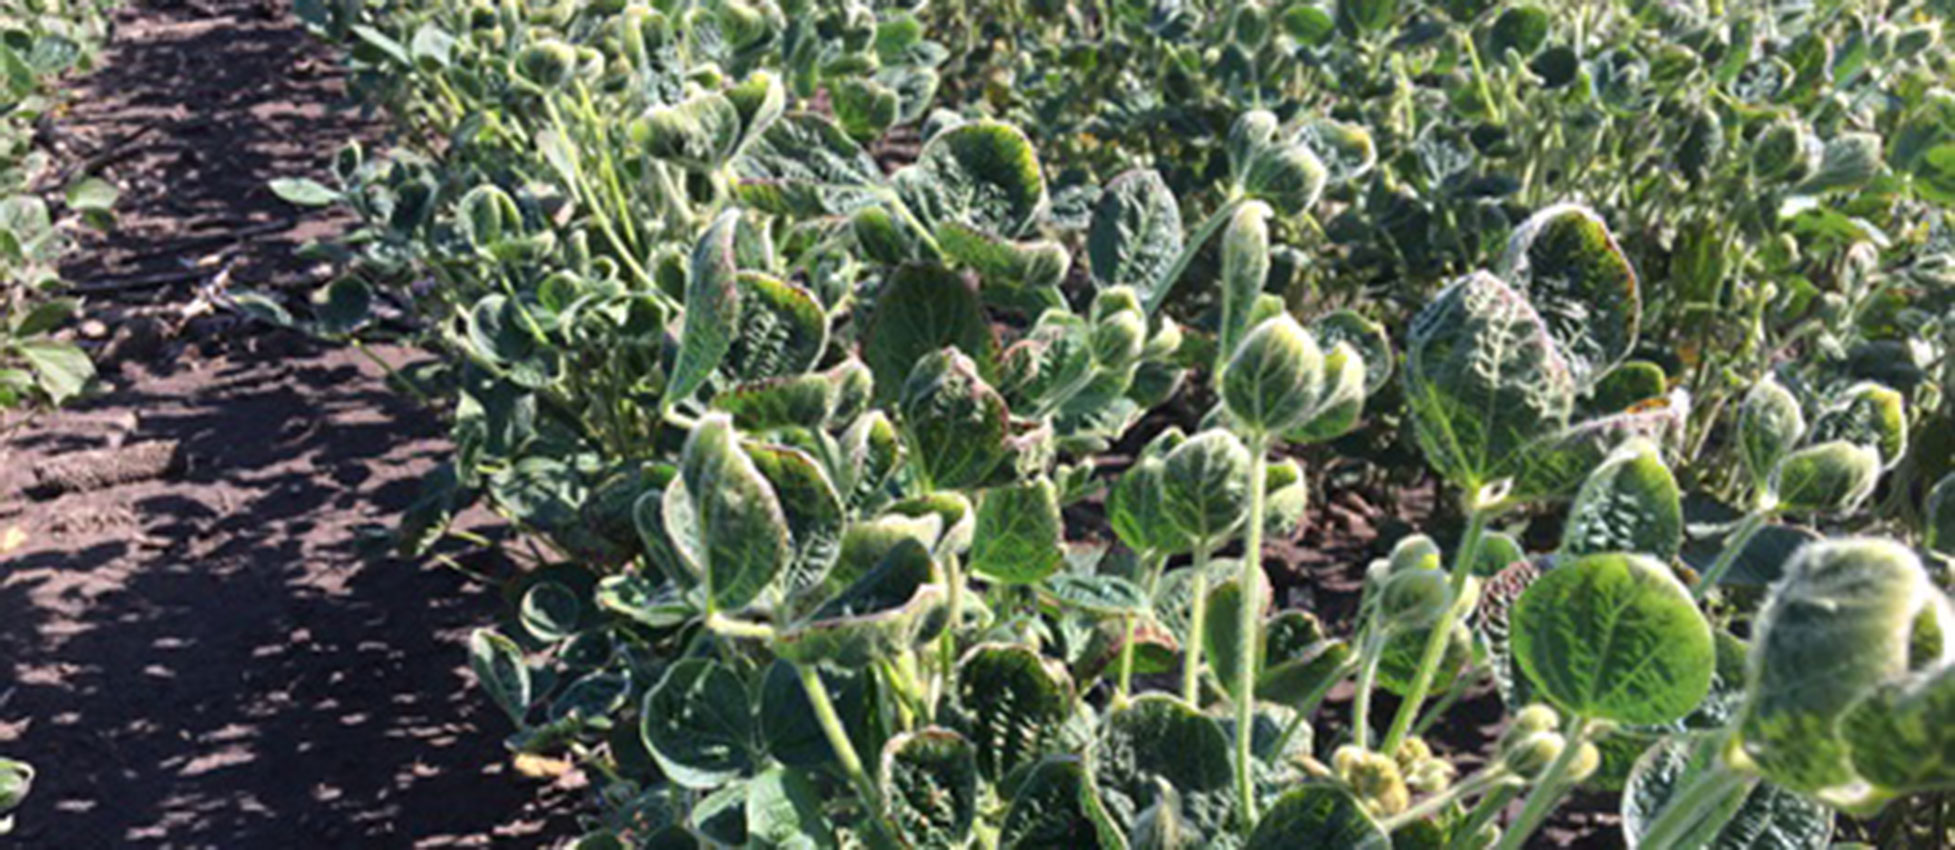 Dicamba damaged soybeans from SDSU Extension